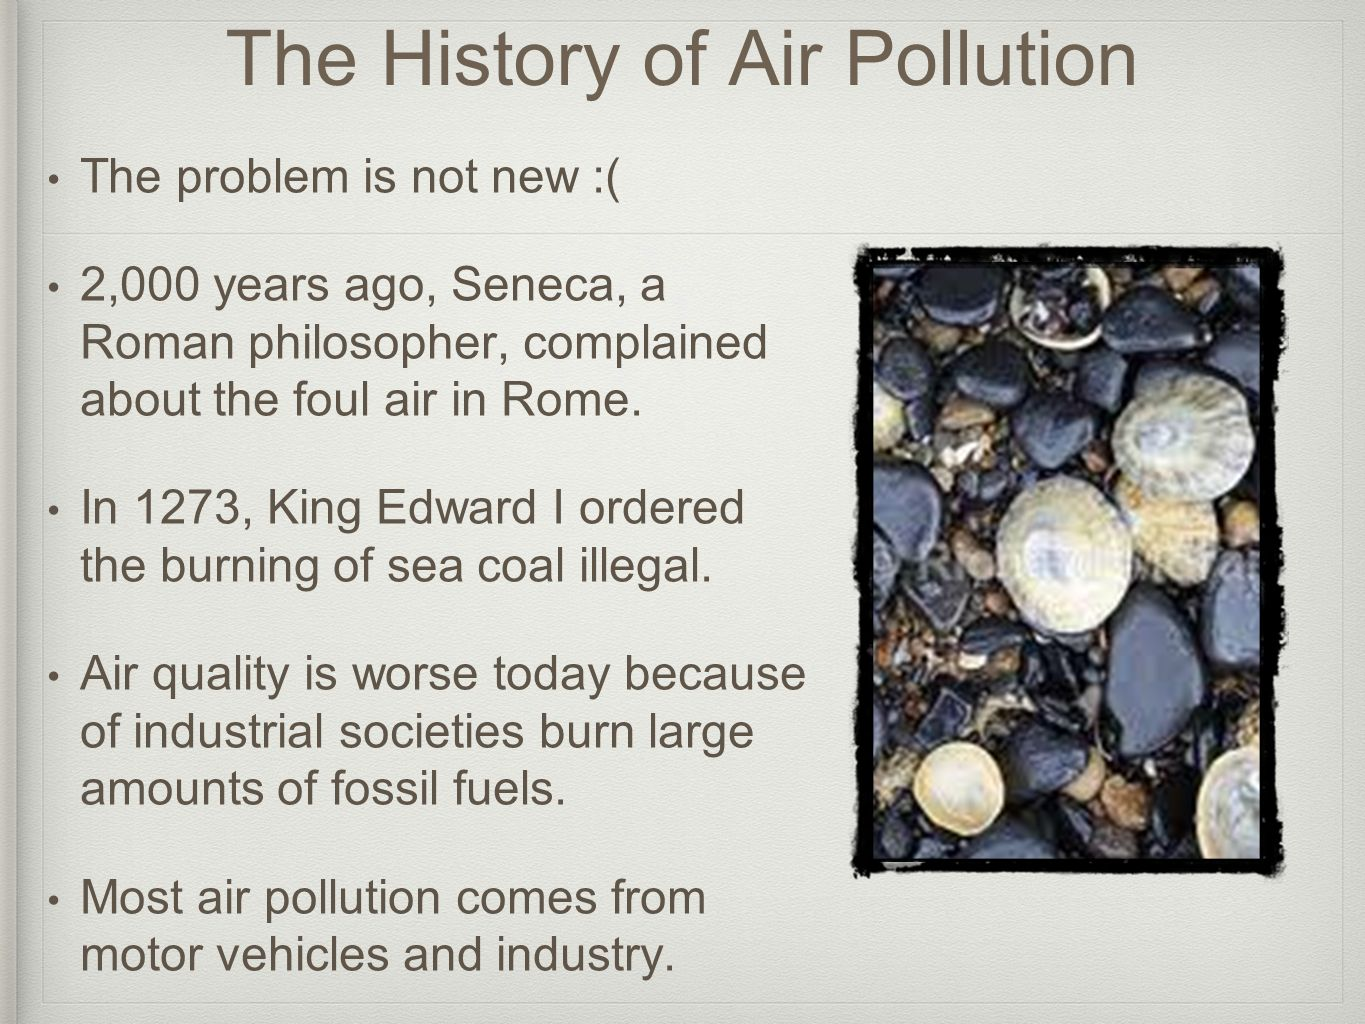 The History of Air Pollution